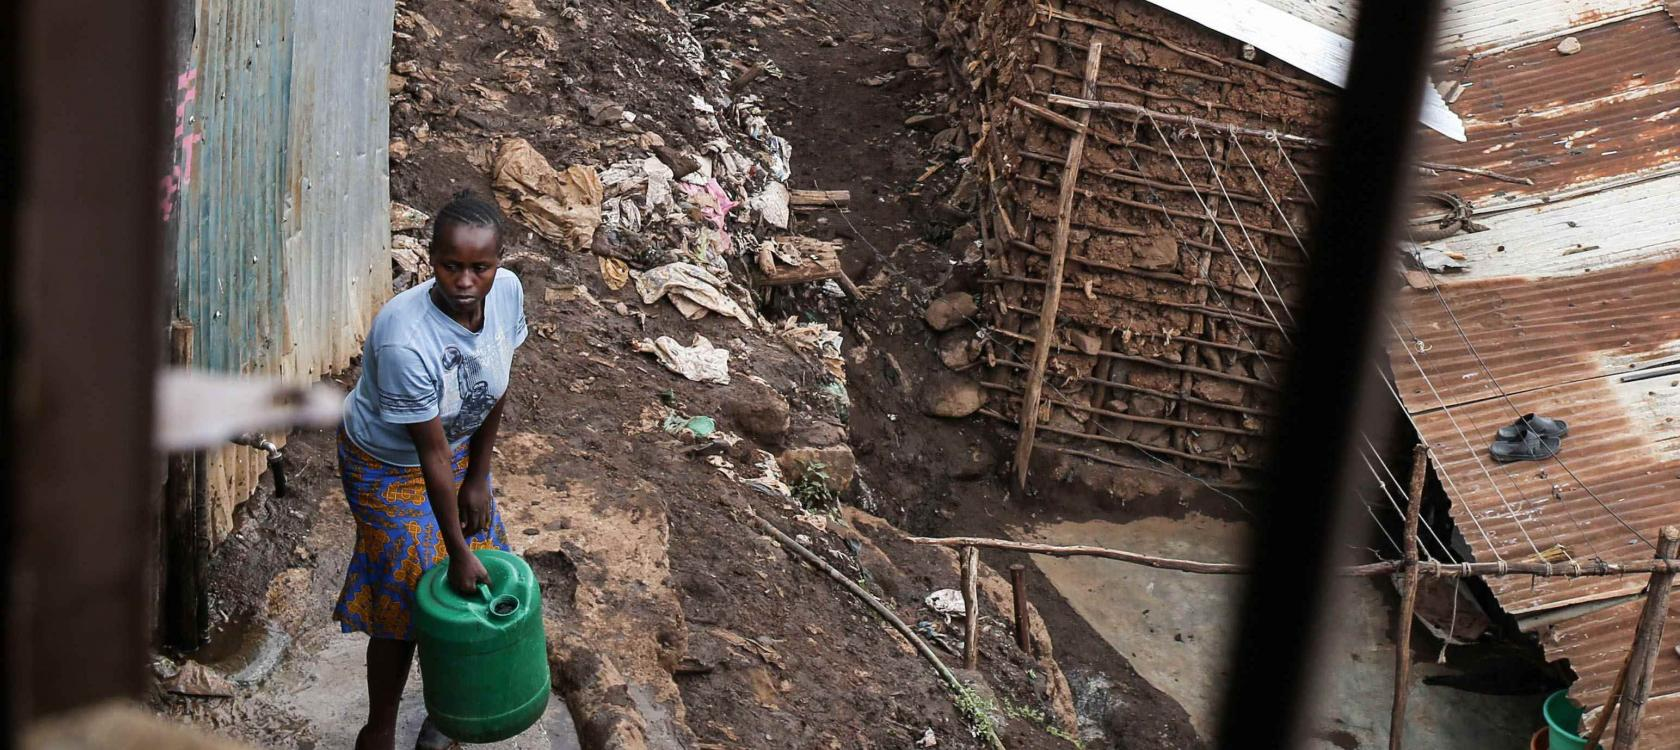 Improving the living conditions of slum residents in Kenya